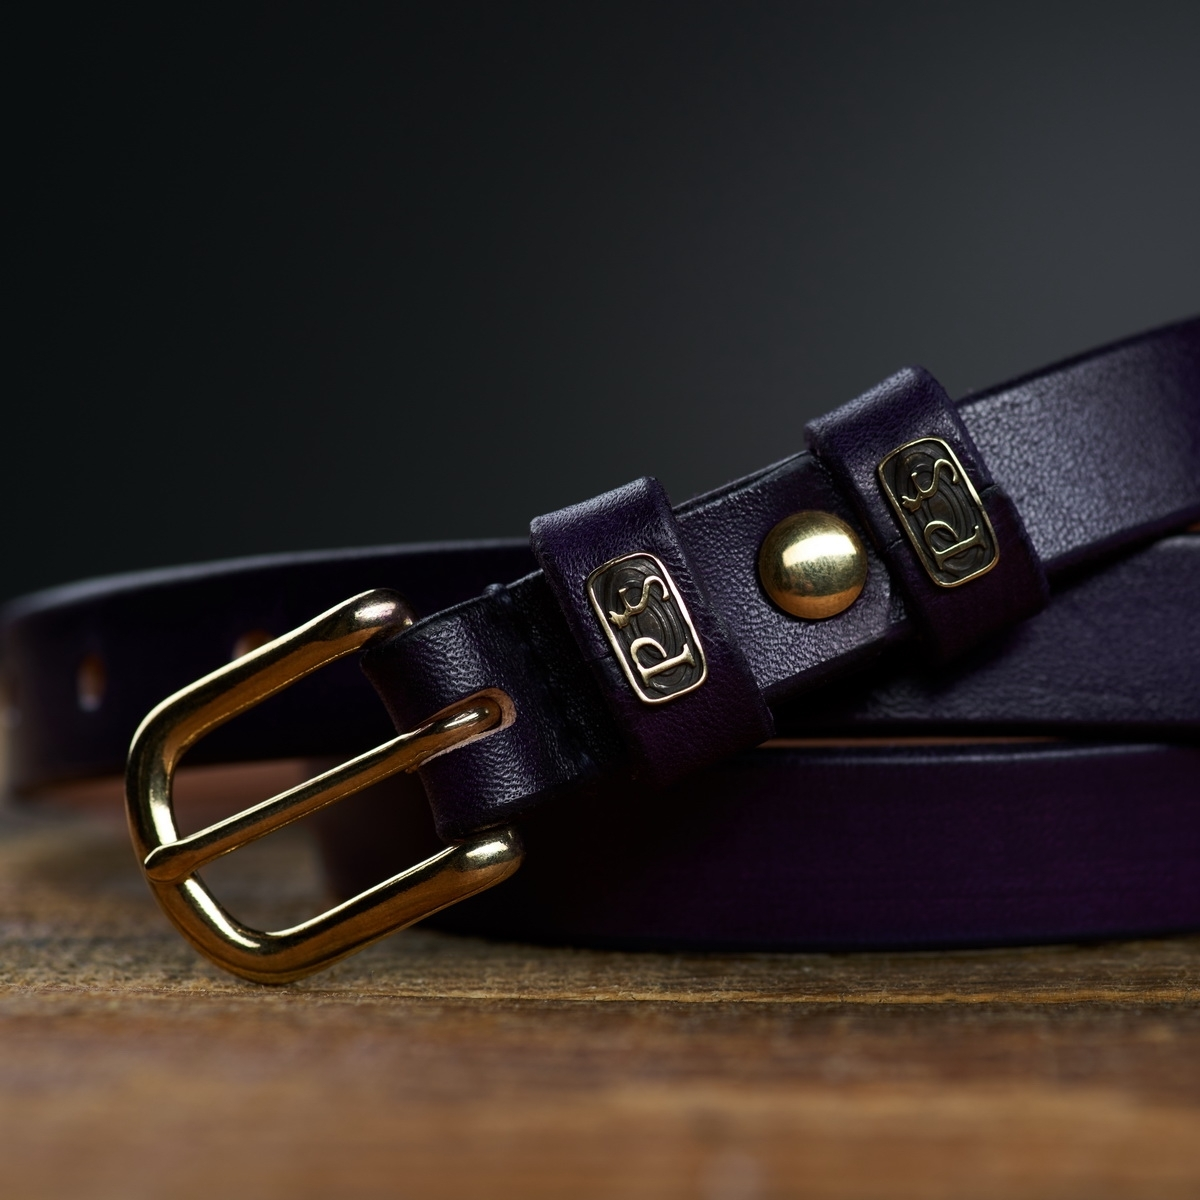 An exquisite 20mm belt with a brass buckle violet ink